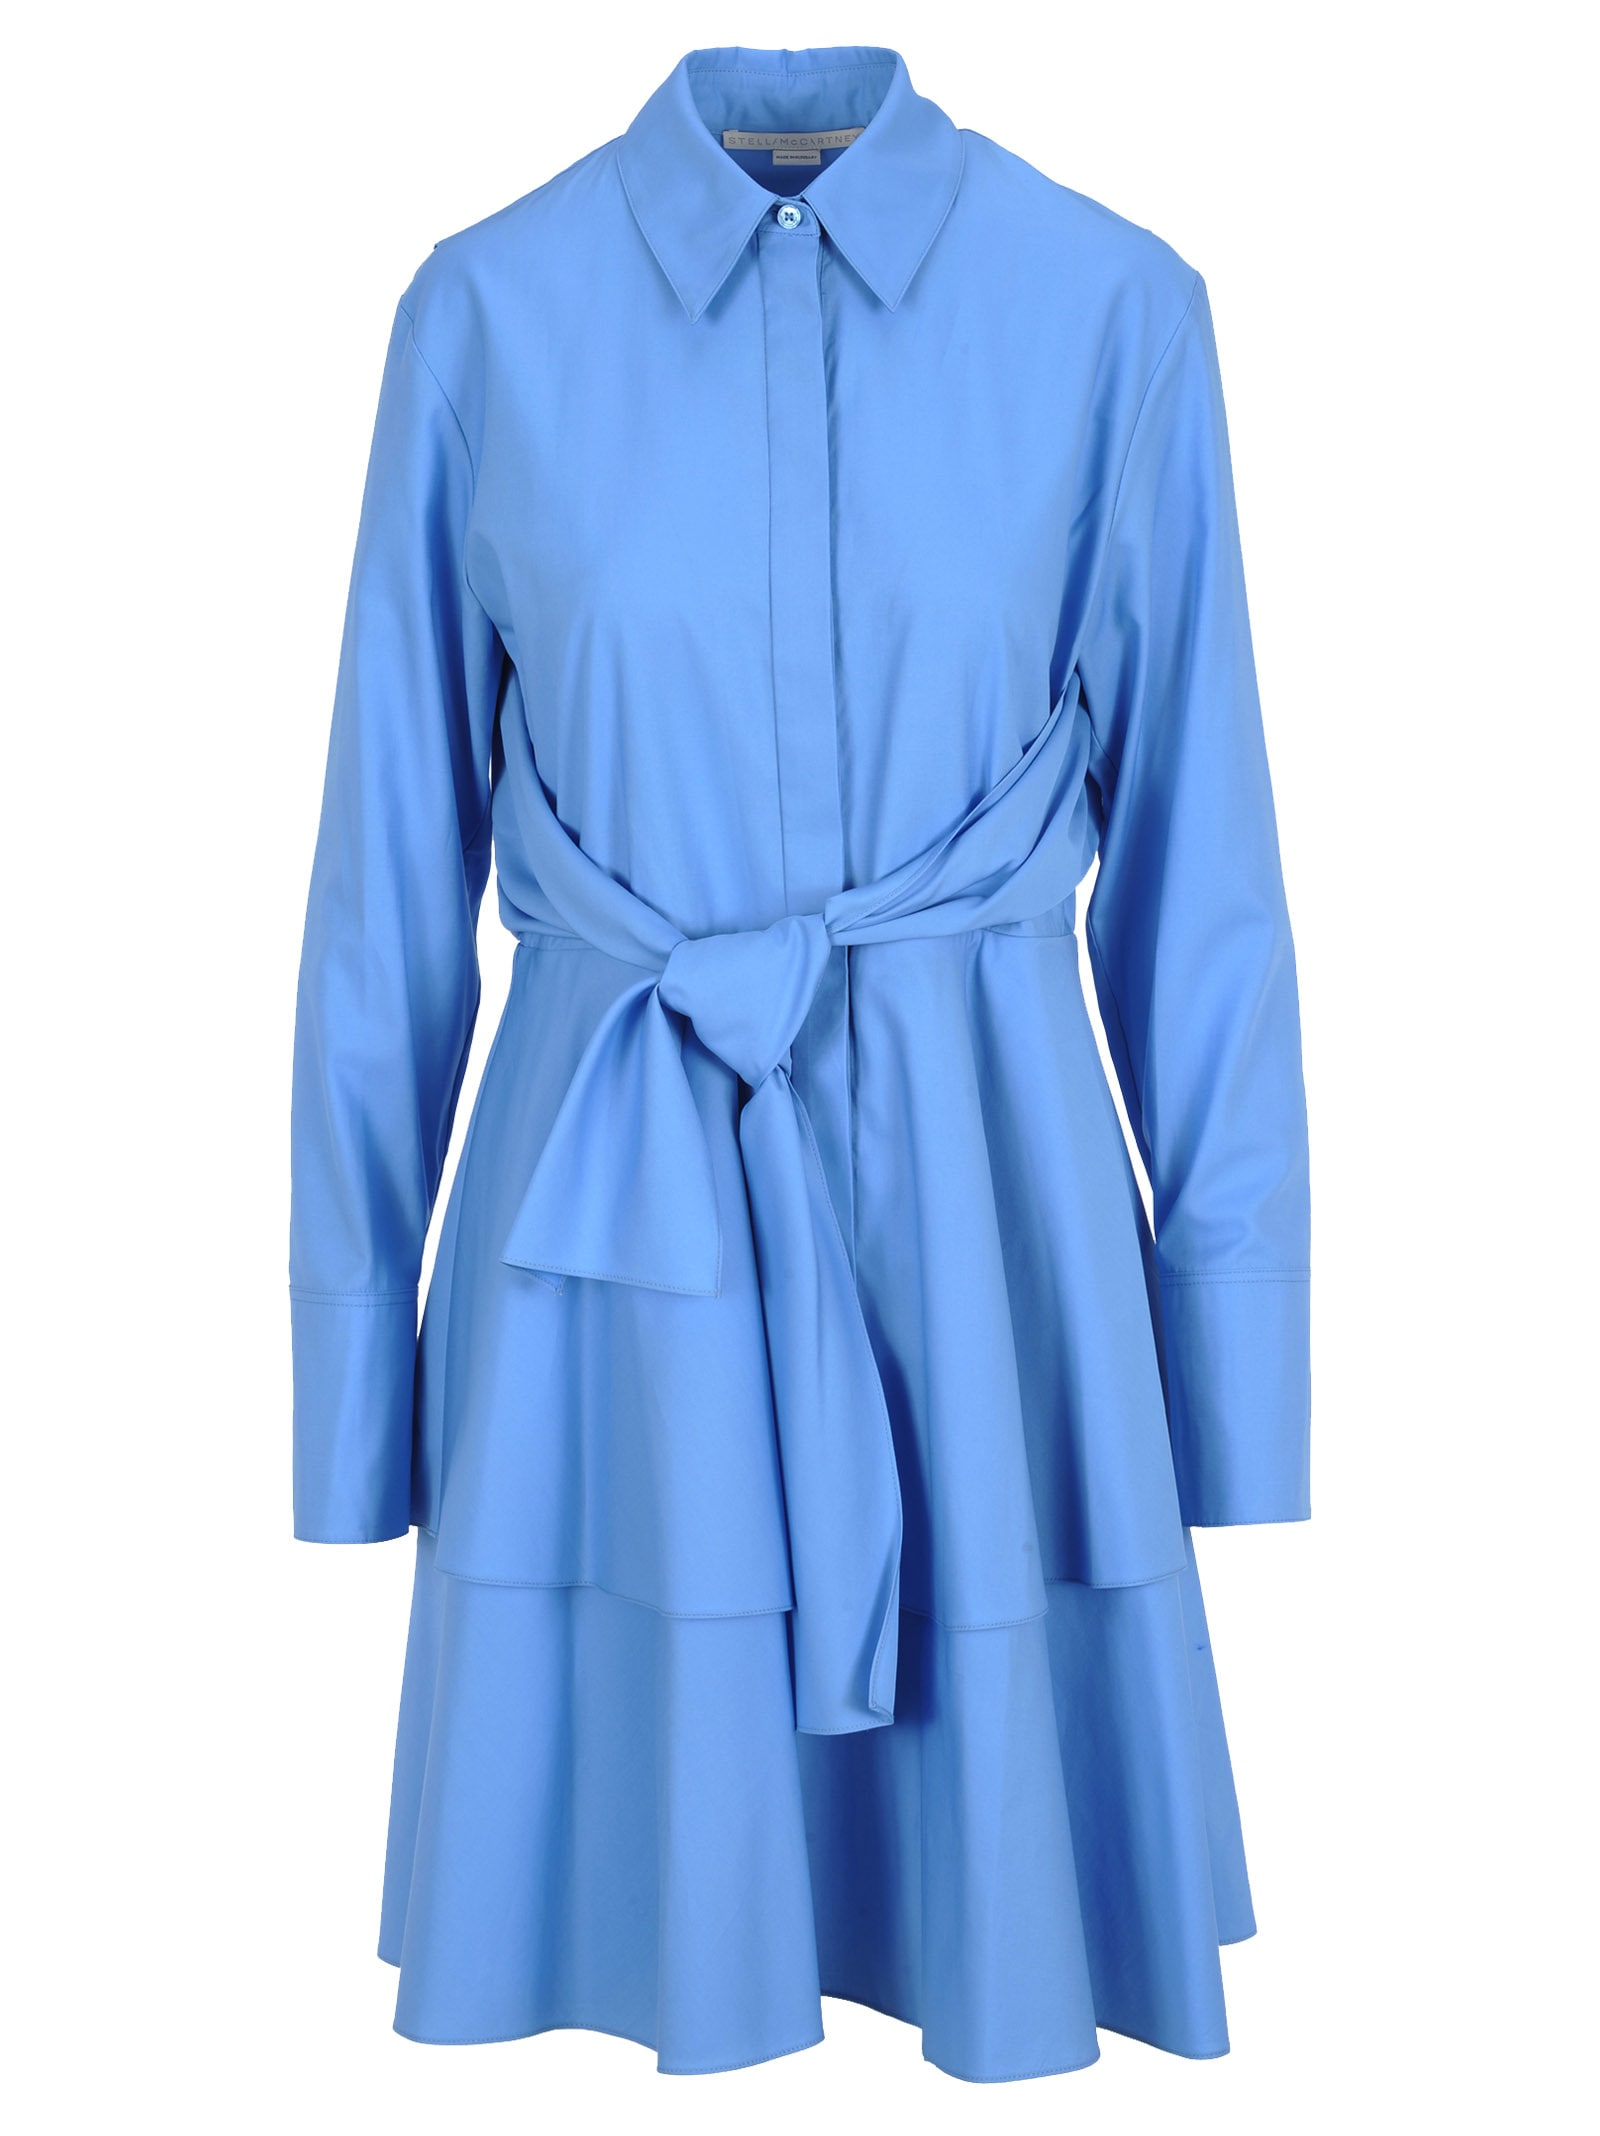 Stella Mccartney Stella Mccartney Ruffle Shirt Dress